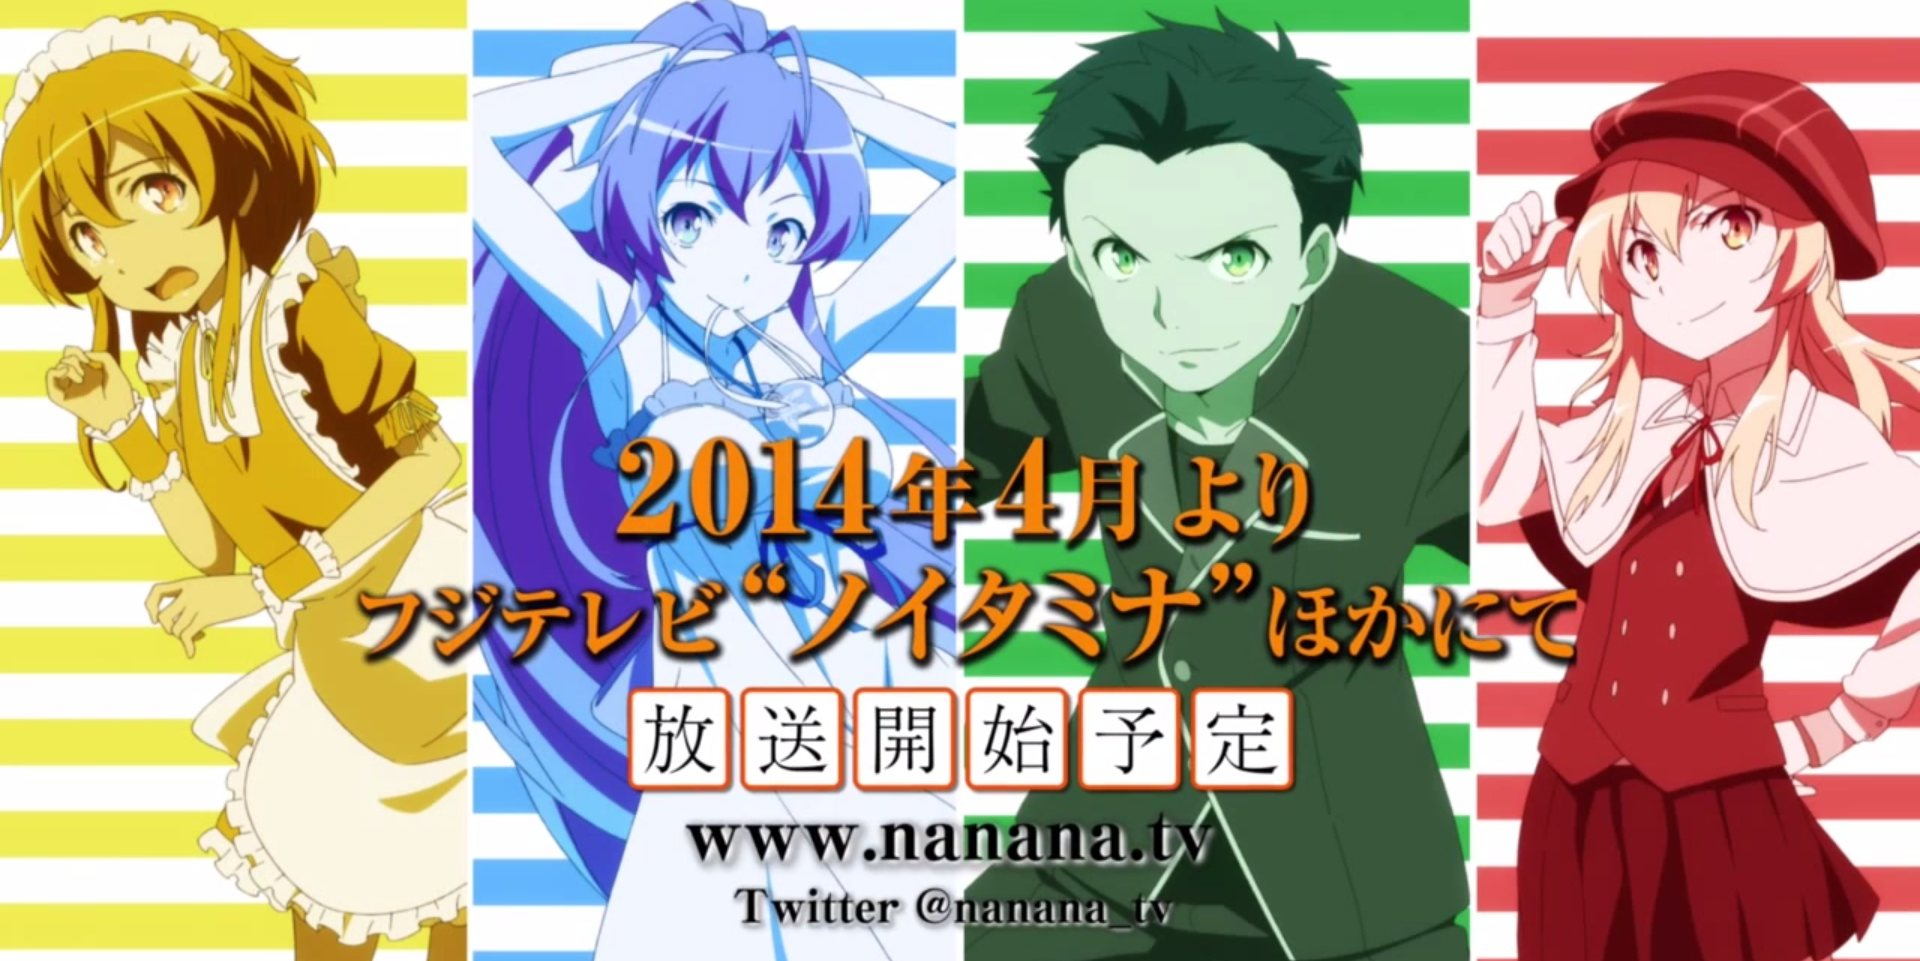 Ryugajo Nanana no Maizoukin, Anime Baru NoitaminA April 2014